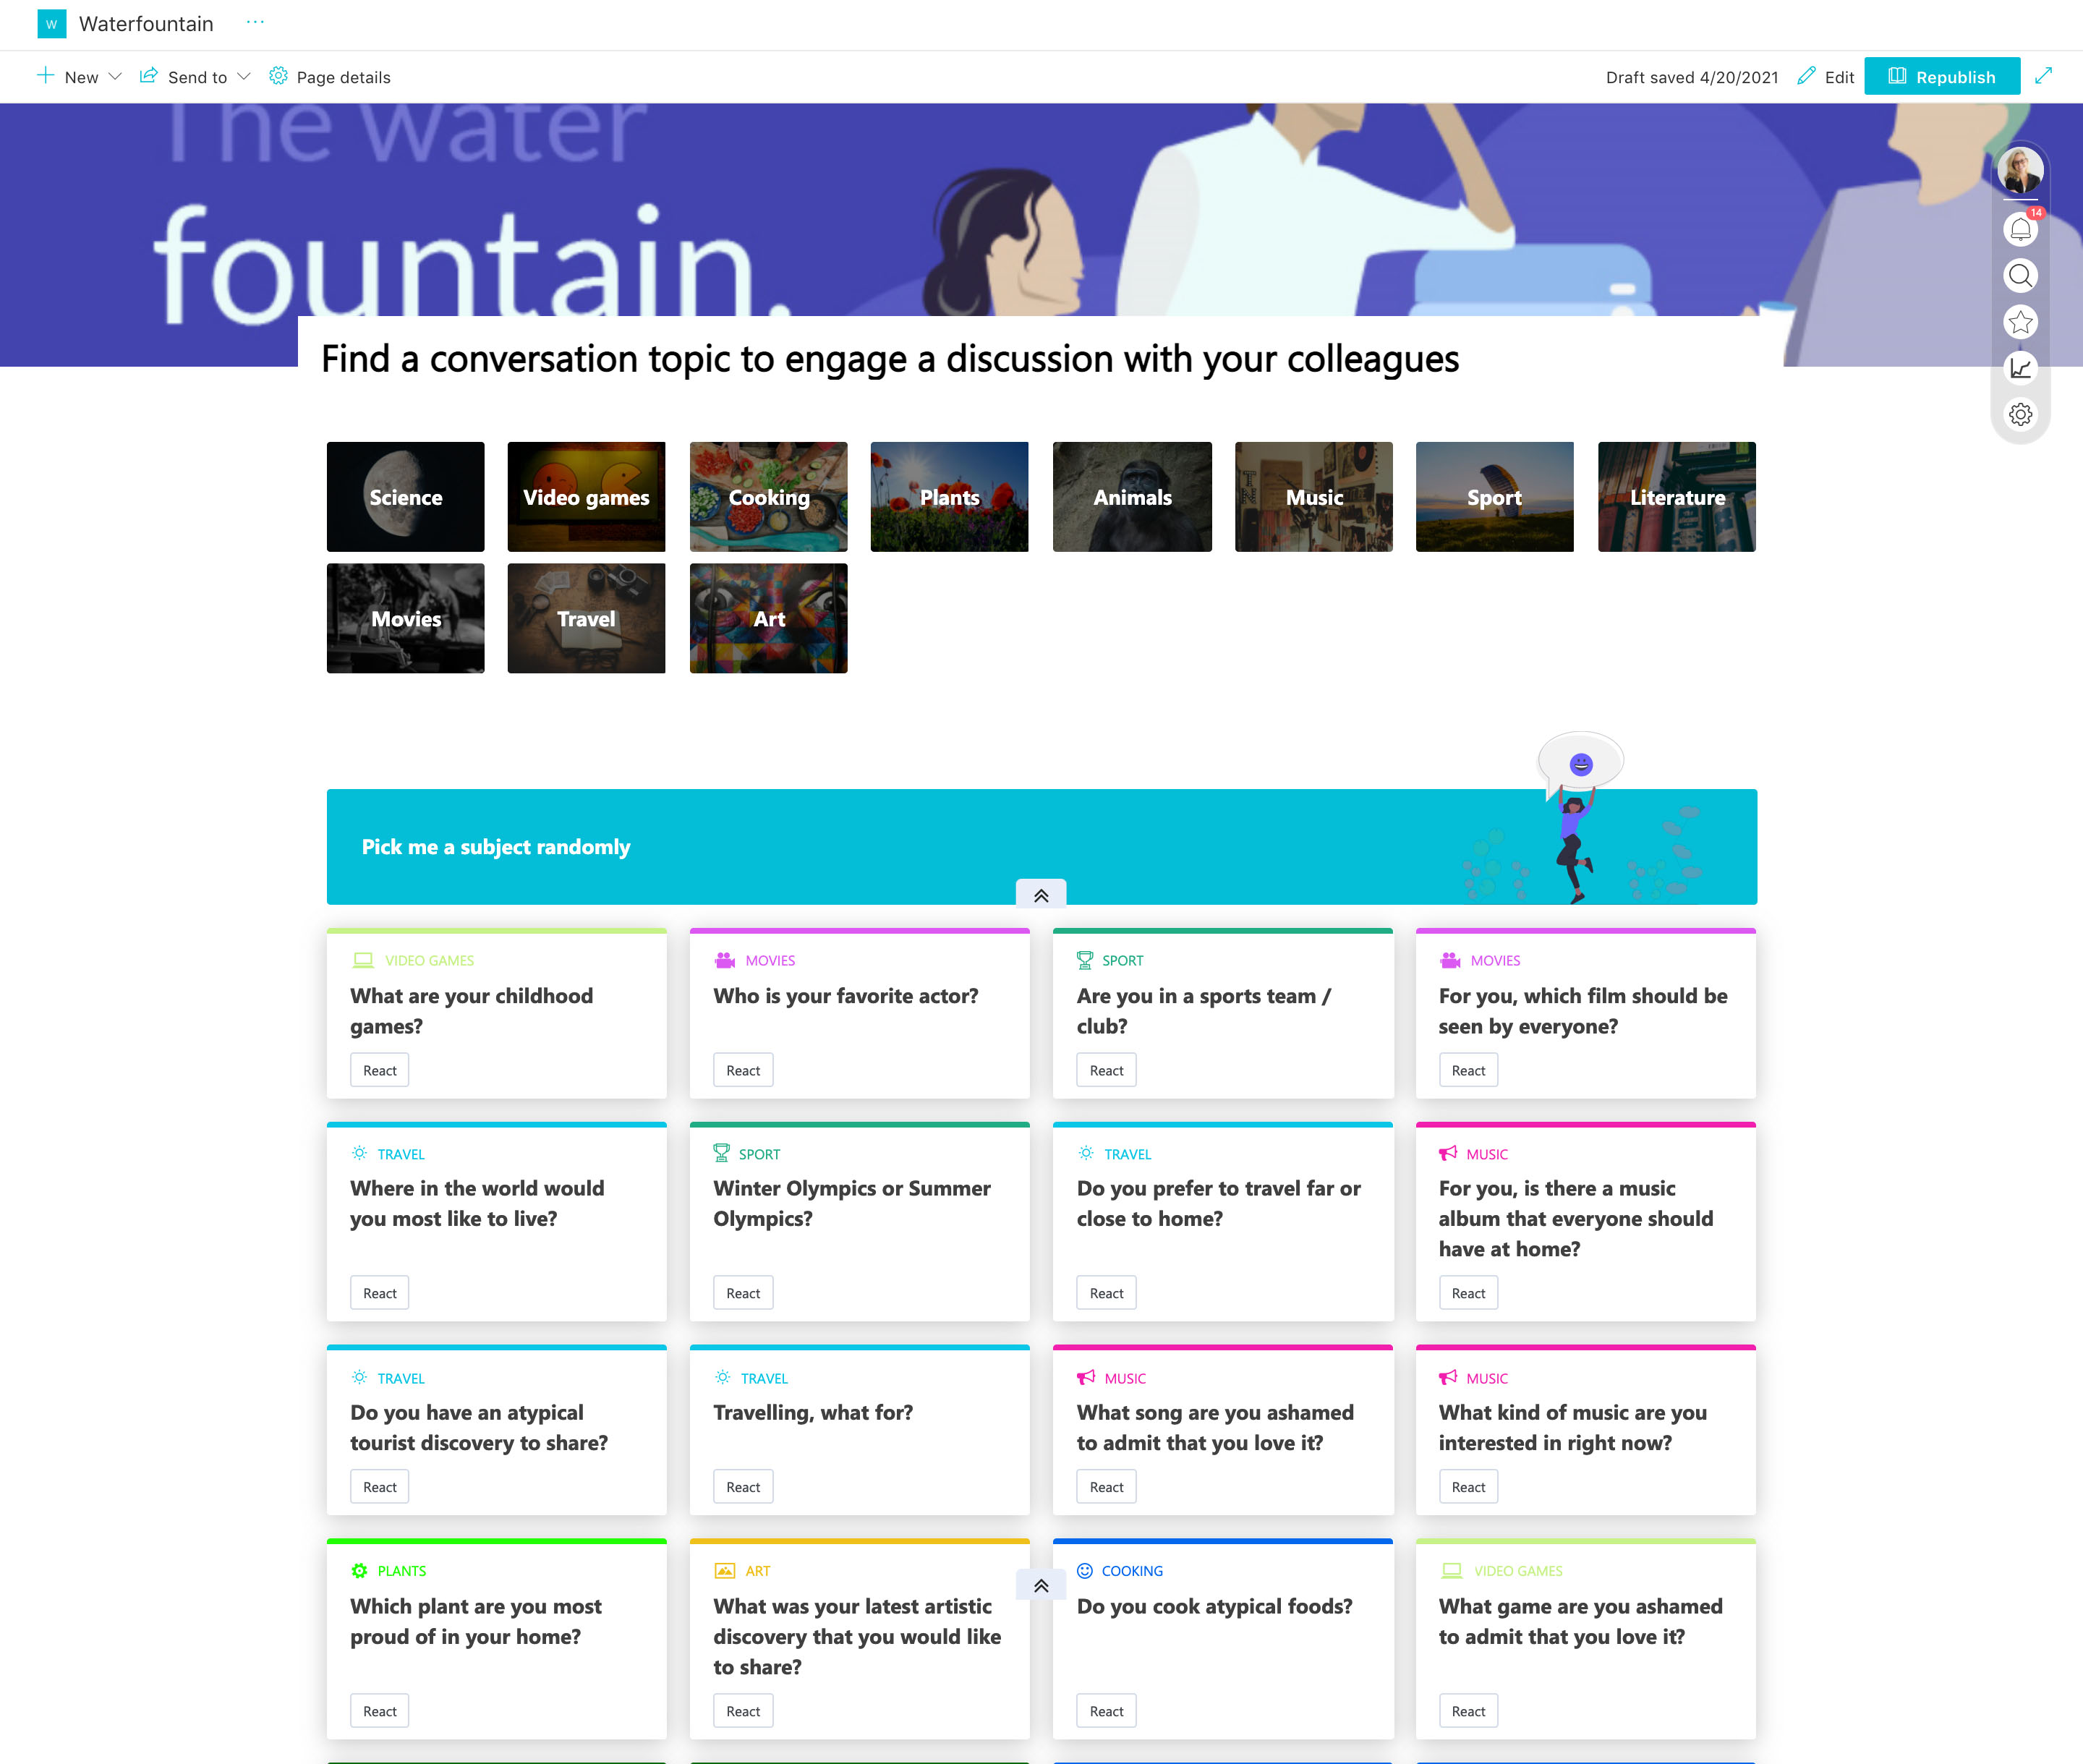 screencapture-pow365-sharepoint-sites-multilingualconnect-en-US-waterfountain-2021-04-20-17_10_23_copy.jpg